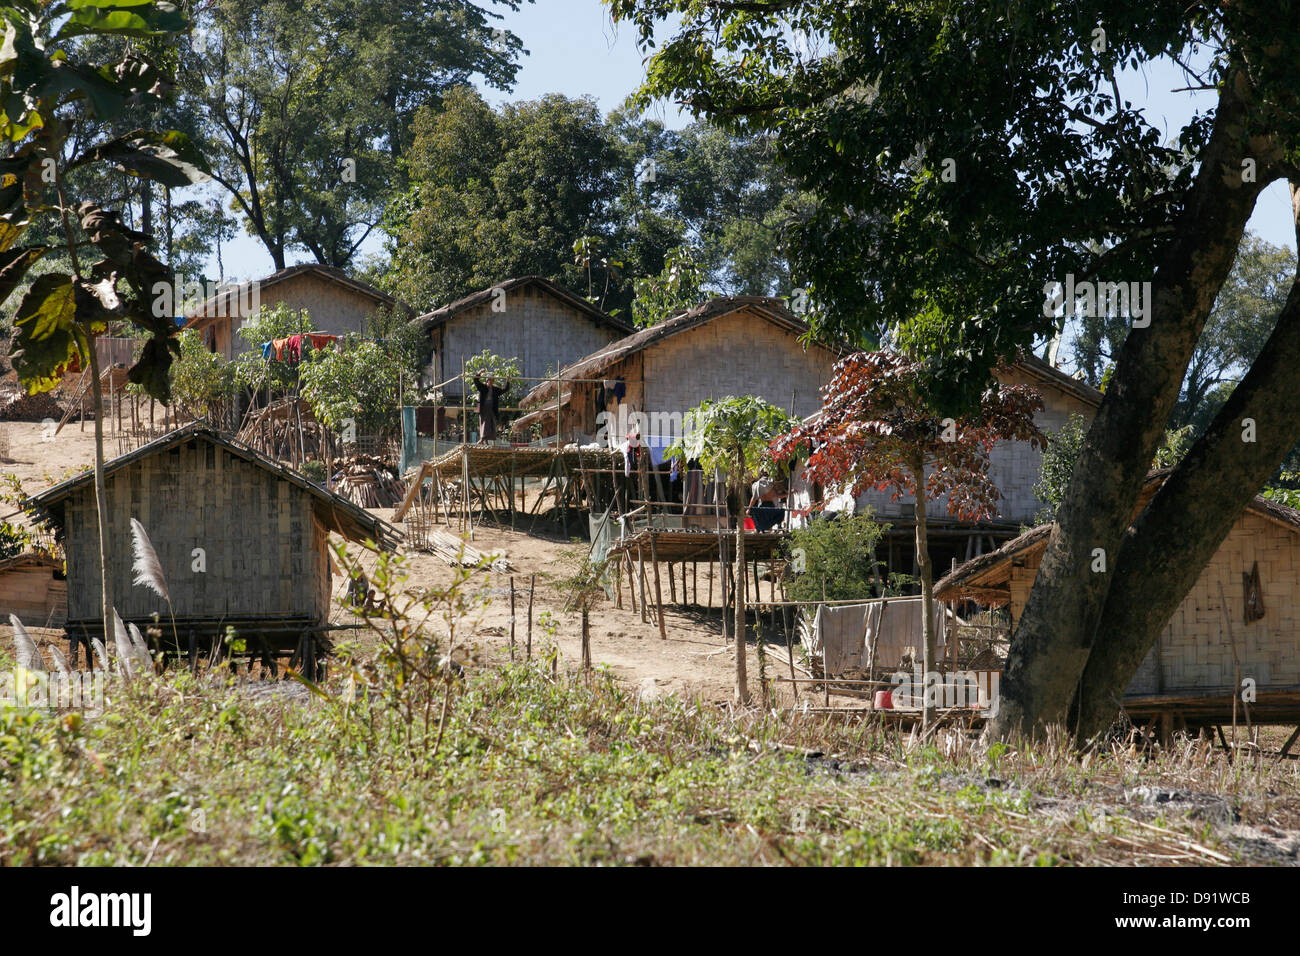 Bamboo houses in the tribal village, Chittagong Hill Tracts